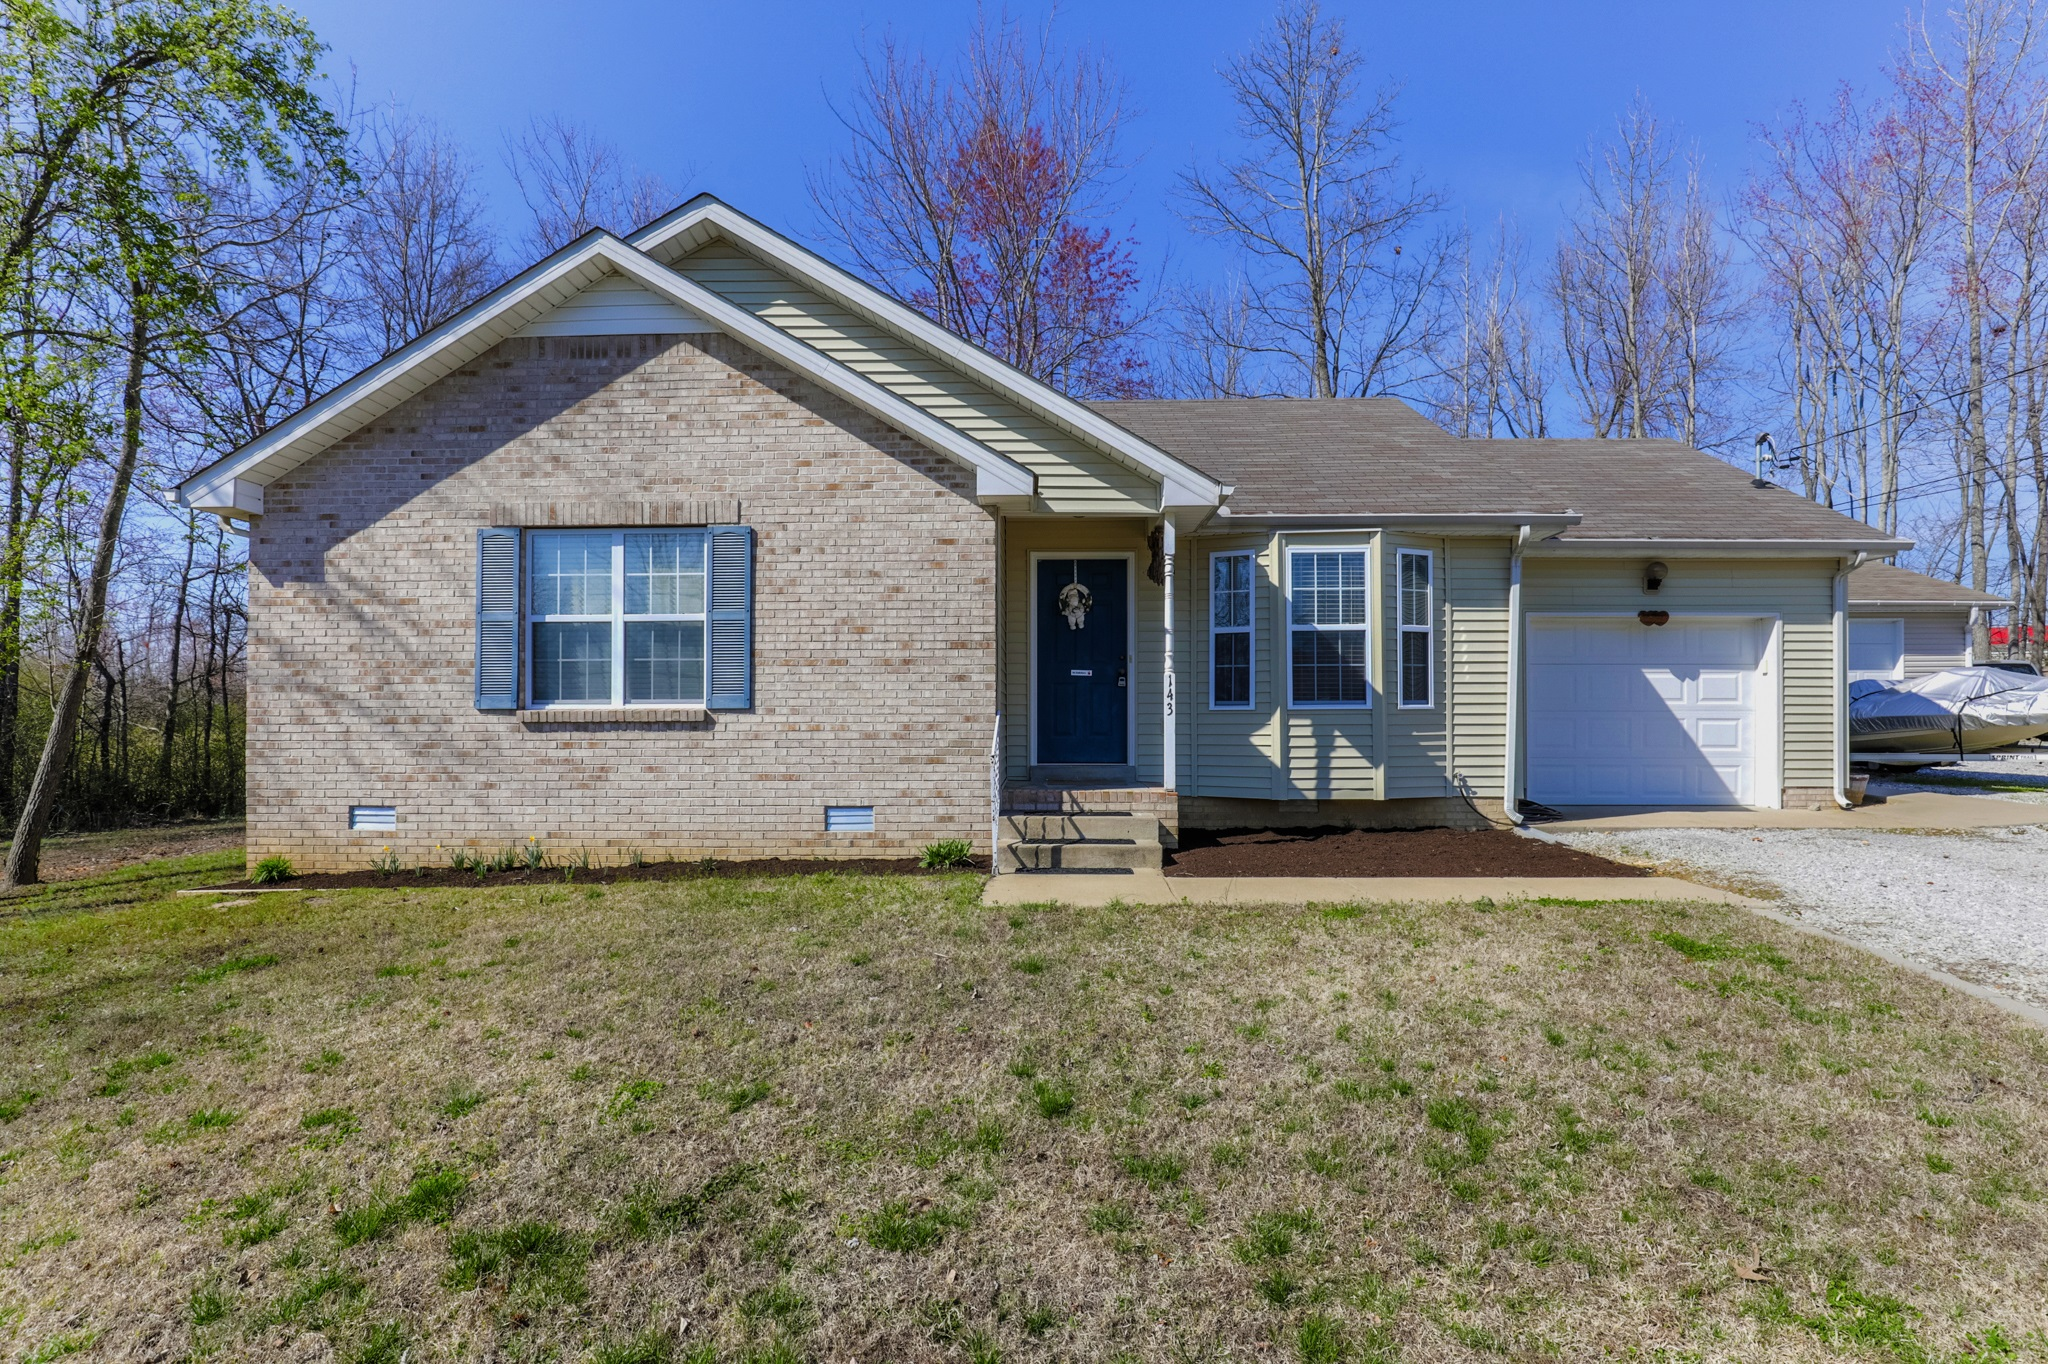 143 Silver Leaf Cir, Dickson TN(LOW-RES) (23 of 25)